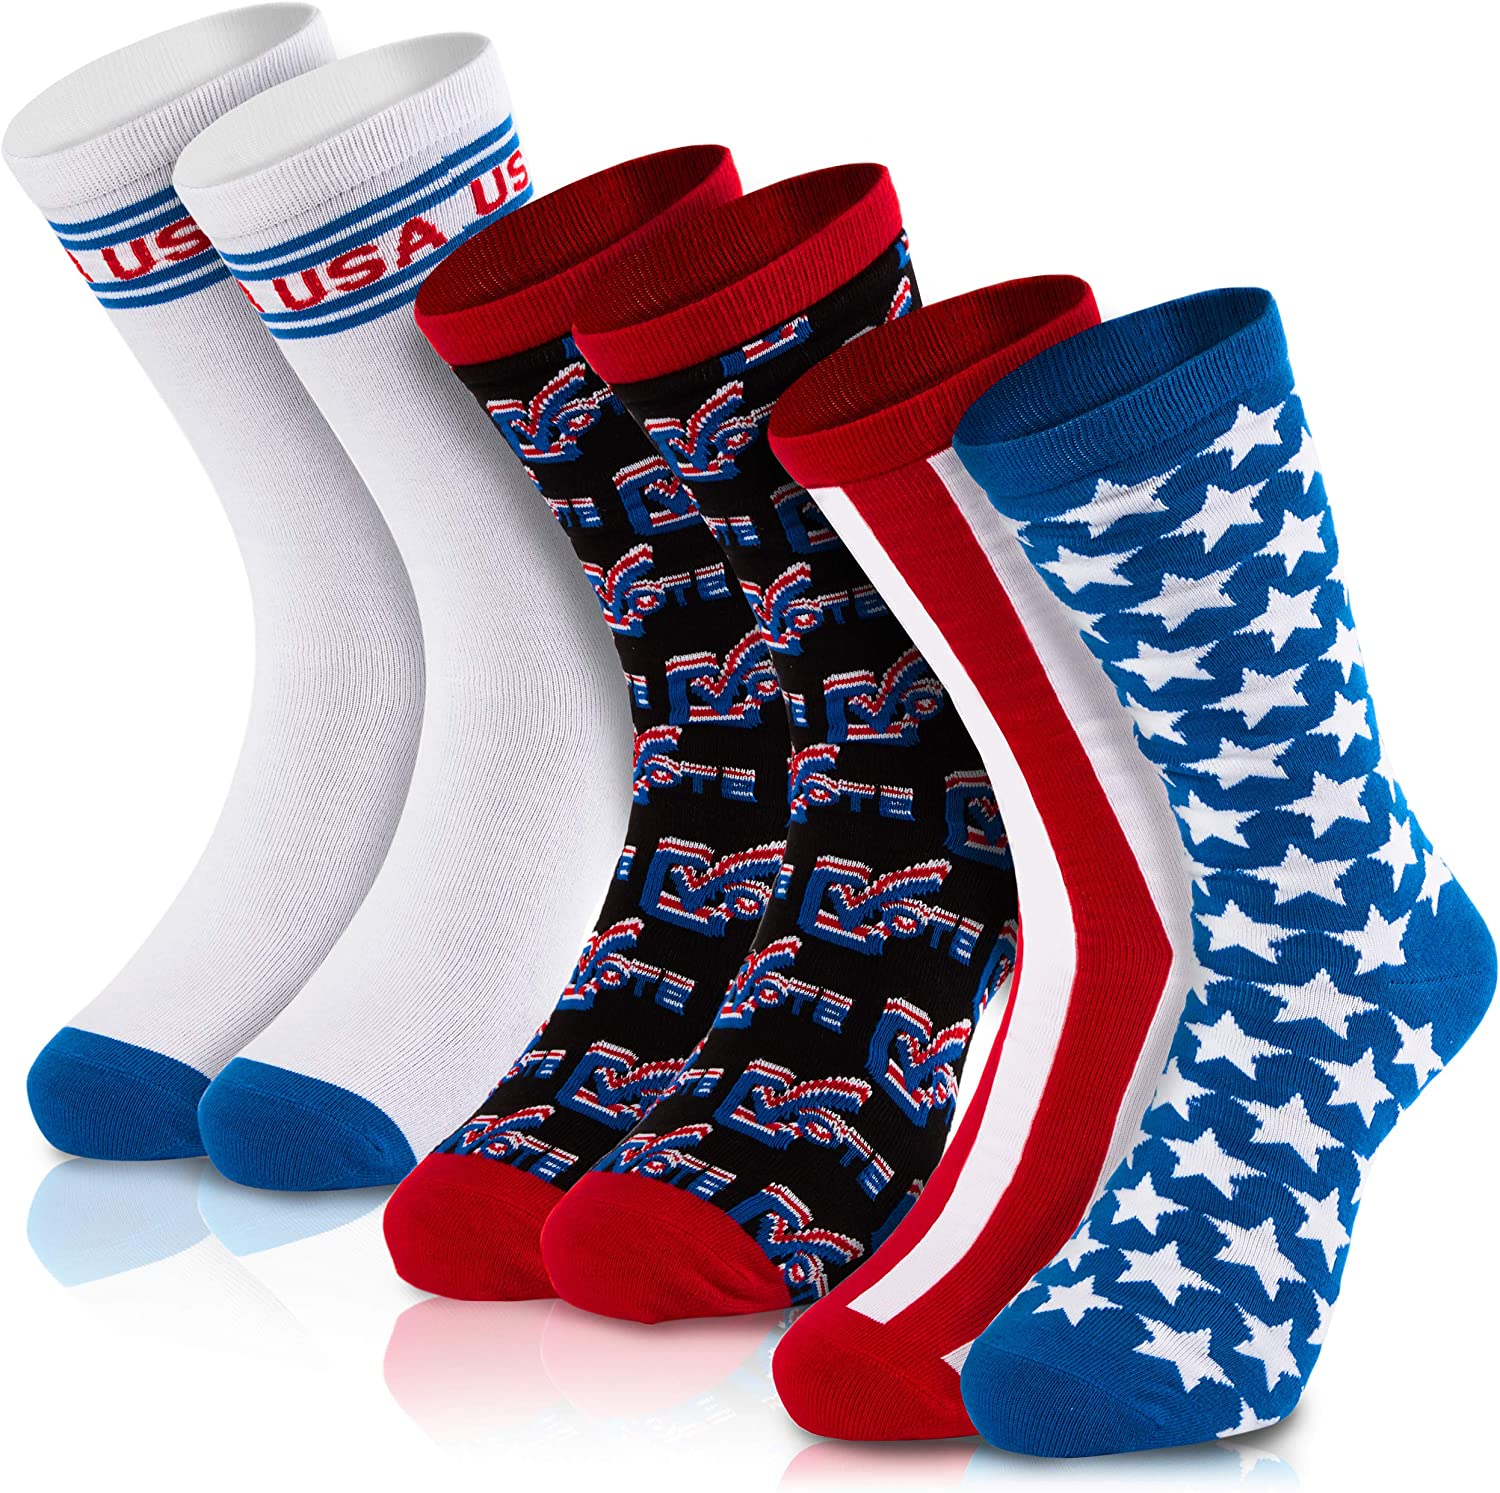 Patriotic Crew Socks for Memorial Day, Flag Day, July 4th (Adult Size, 3 Pairs)